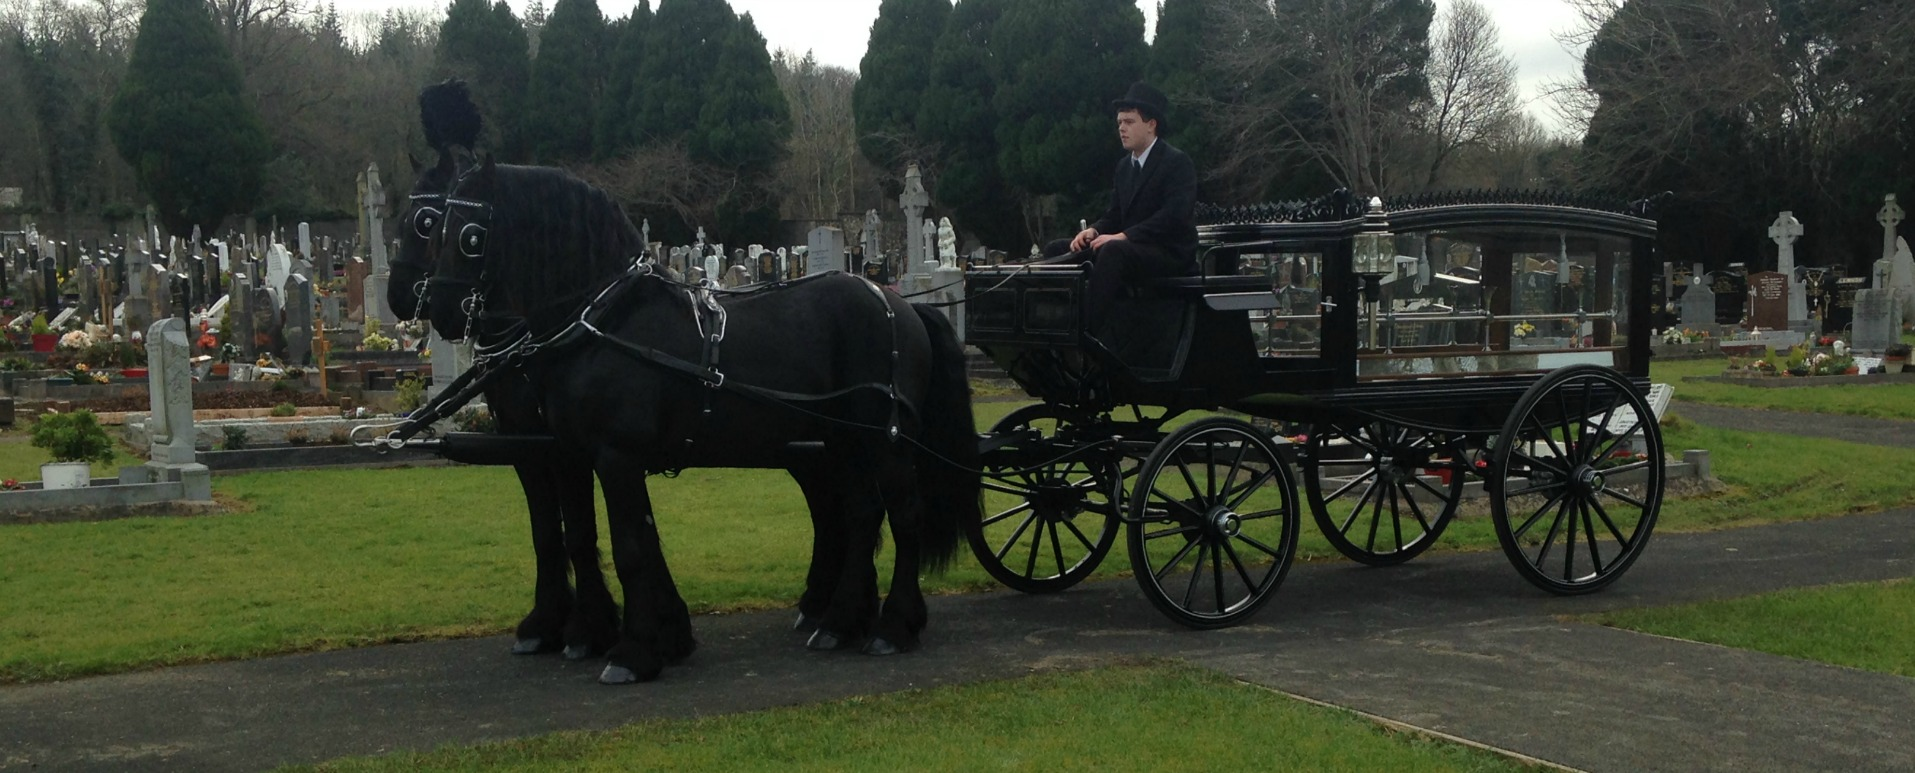 Melia Carriages Funeral Horse and Carriage